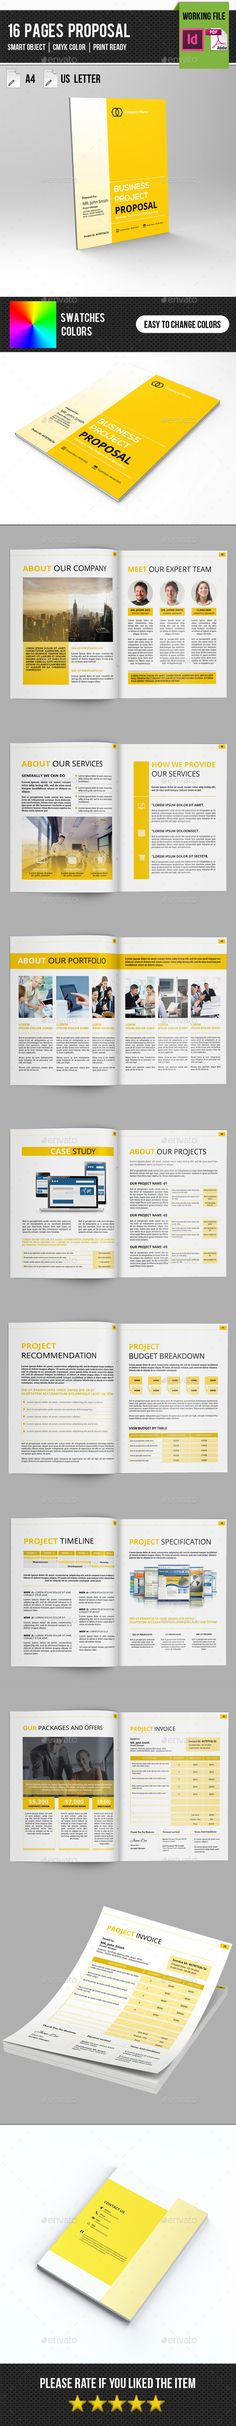 Web Design Project Proposal Project proposal